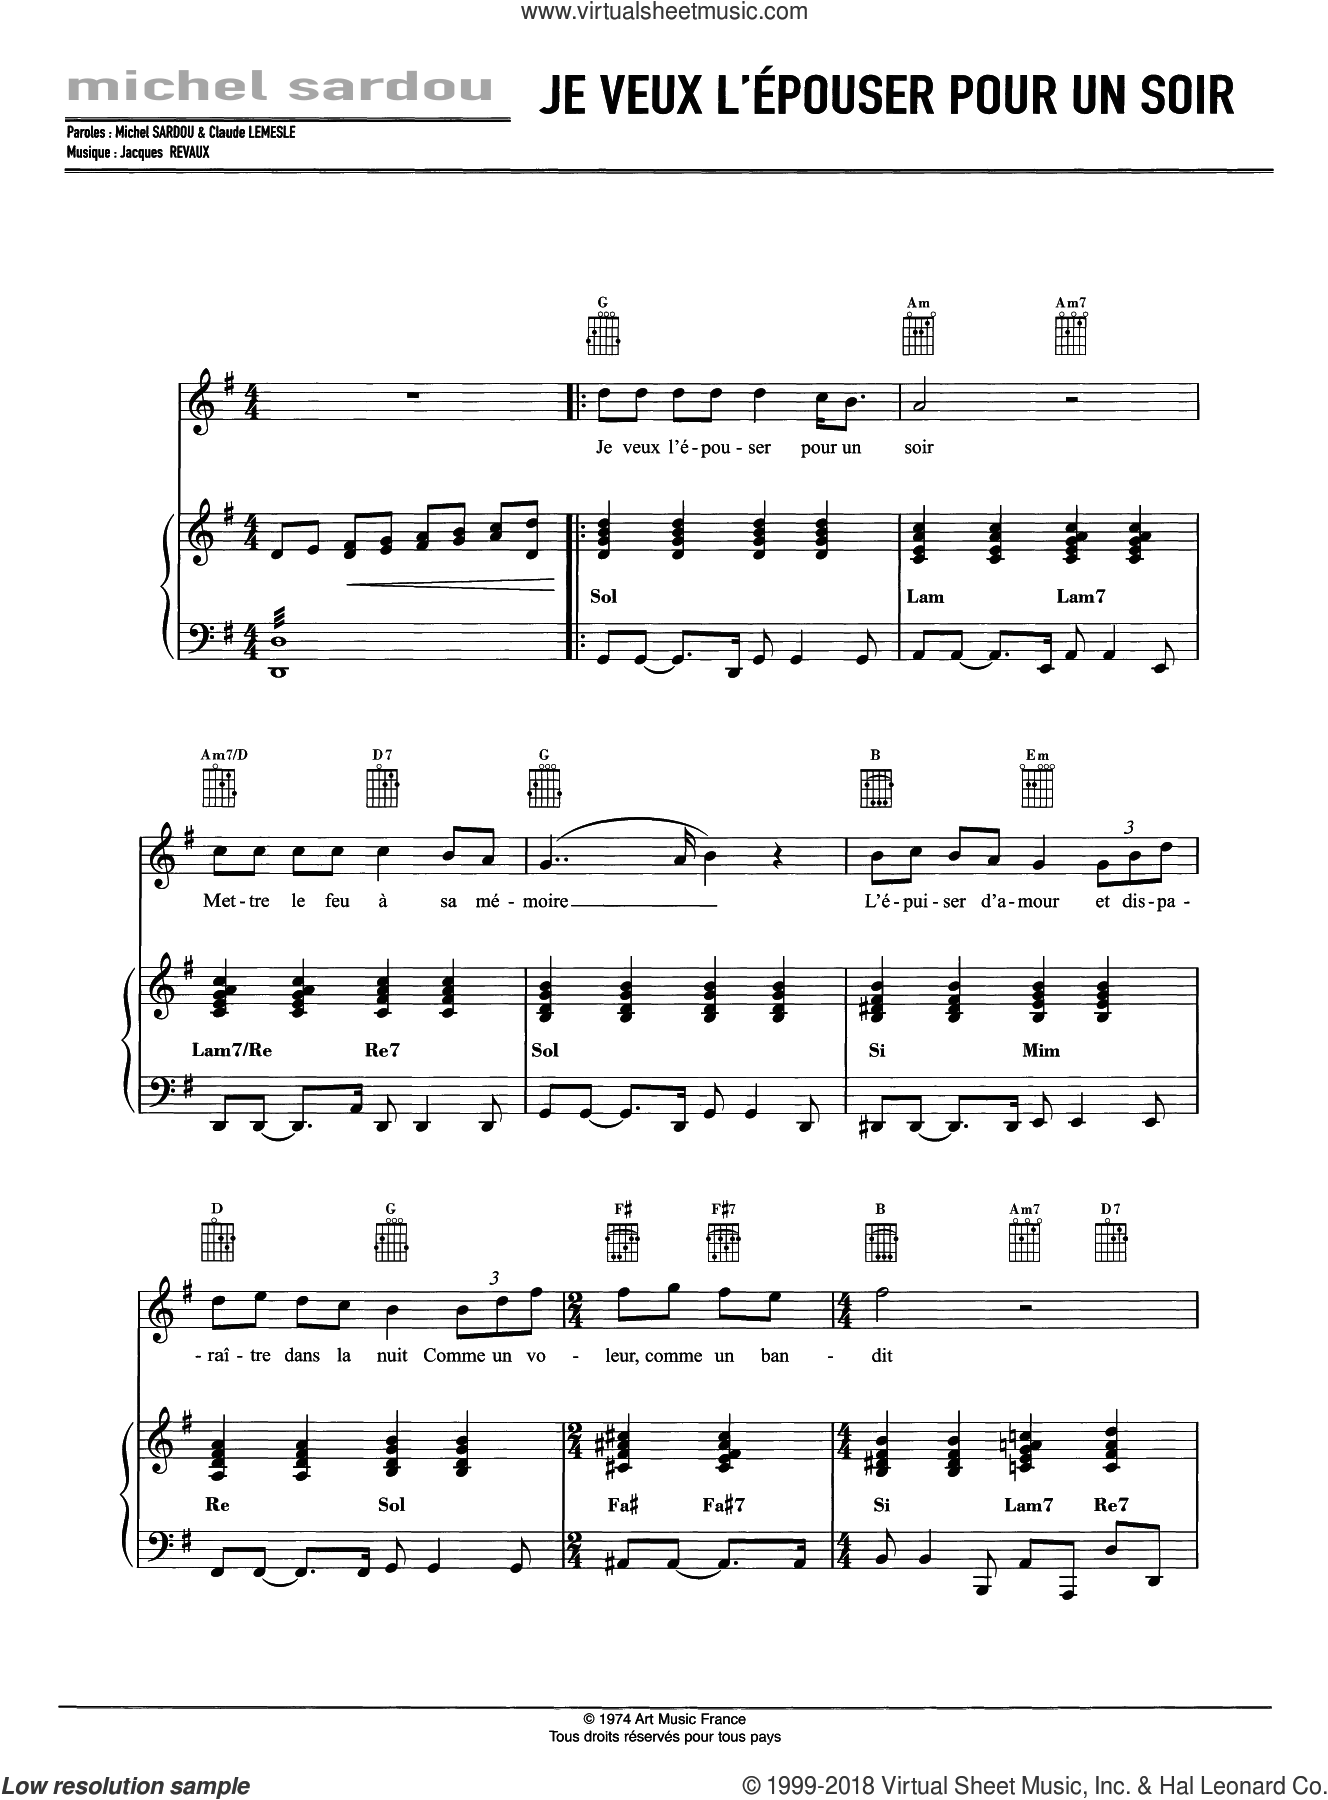 Je Veux L'Epouser Pour Un Soir sheet music for voice, piano or guitar by Michel Sardou and Jacques Revaux, intermediate skill level